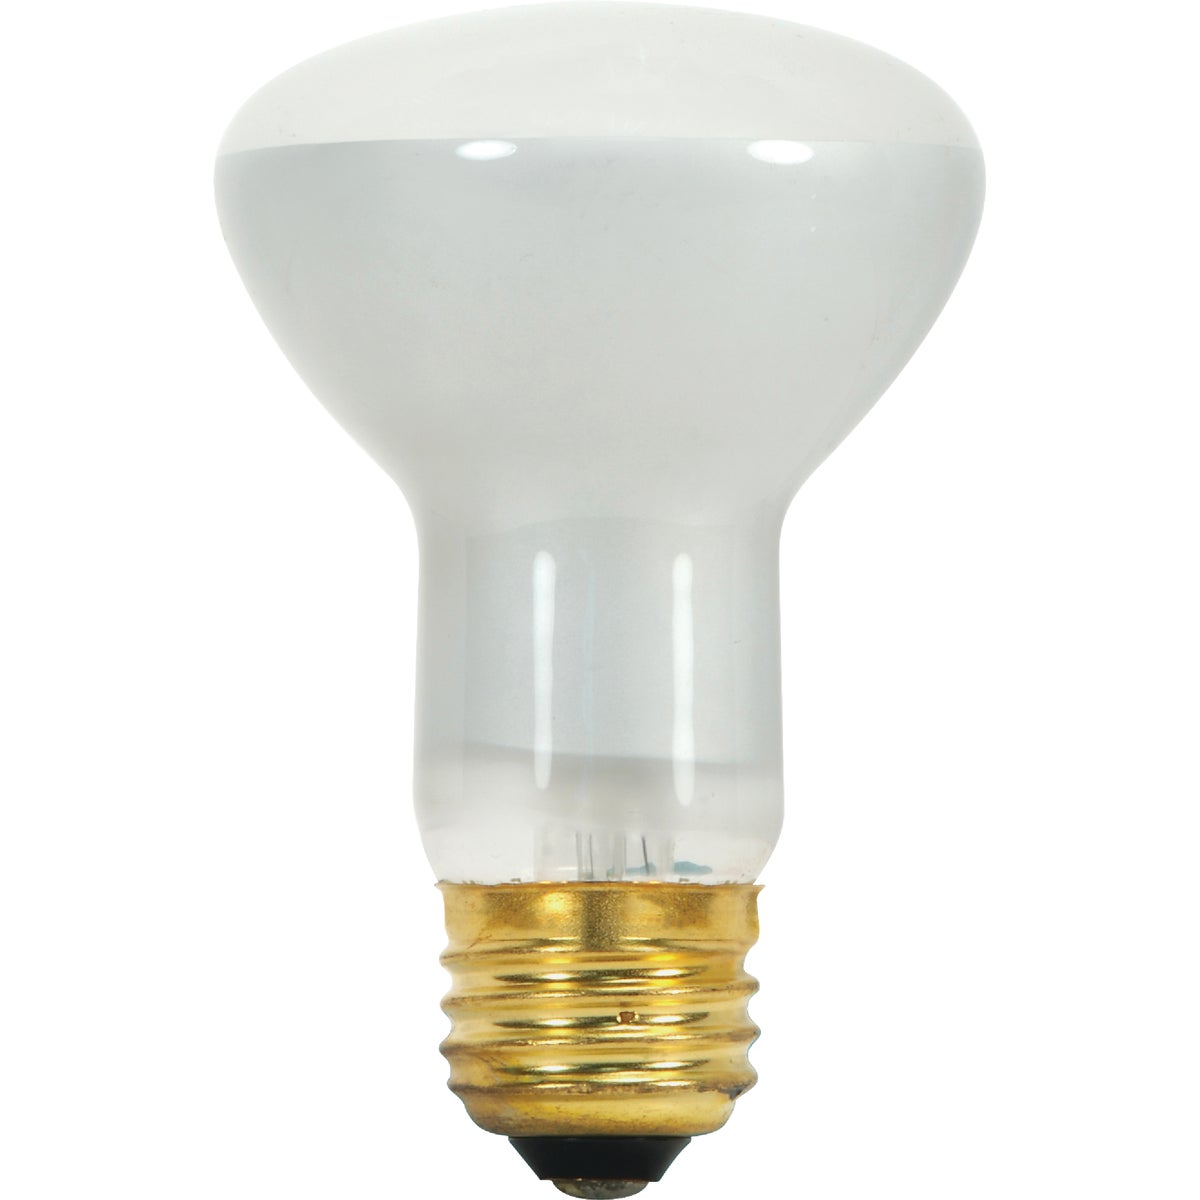 45W REFLECTOR FLOOD BULB - 04229 by Westinghouse Lightng